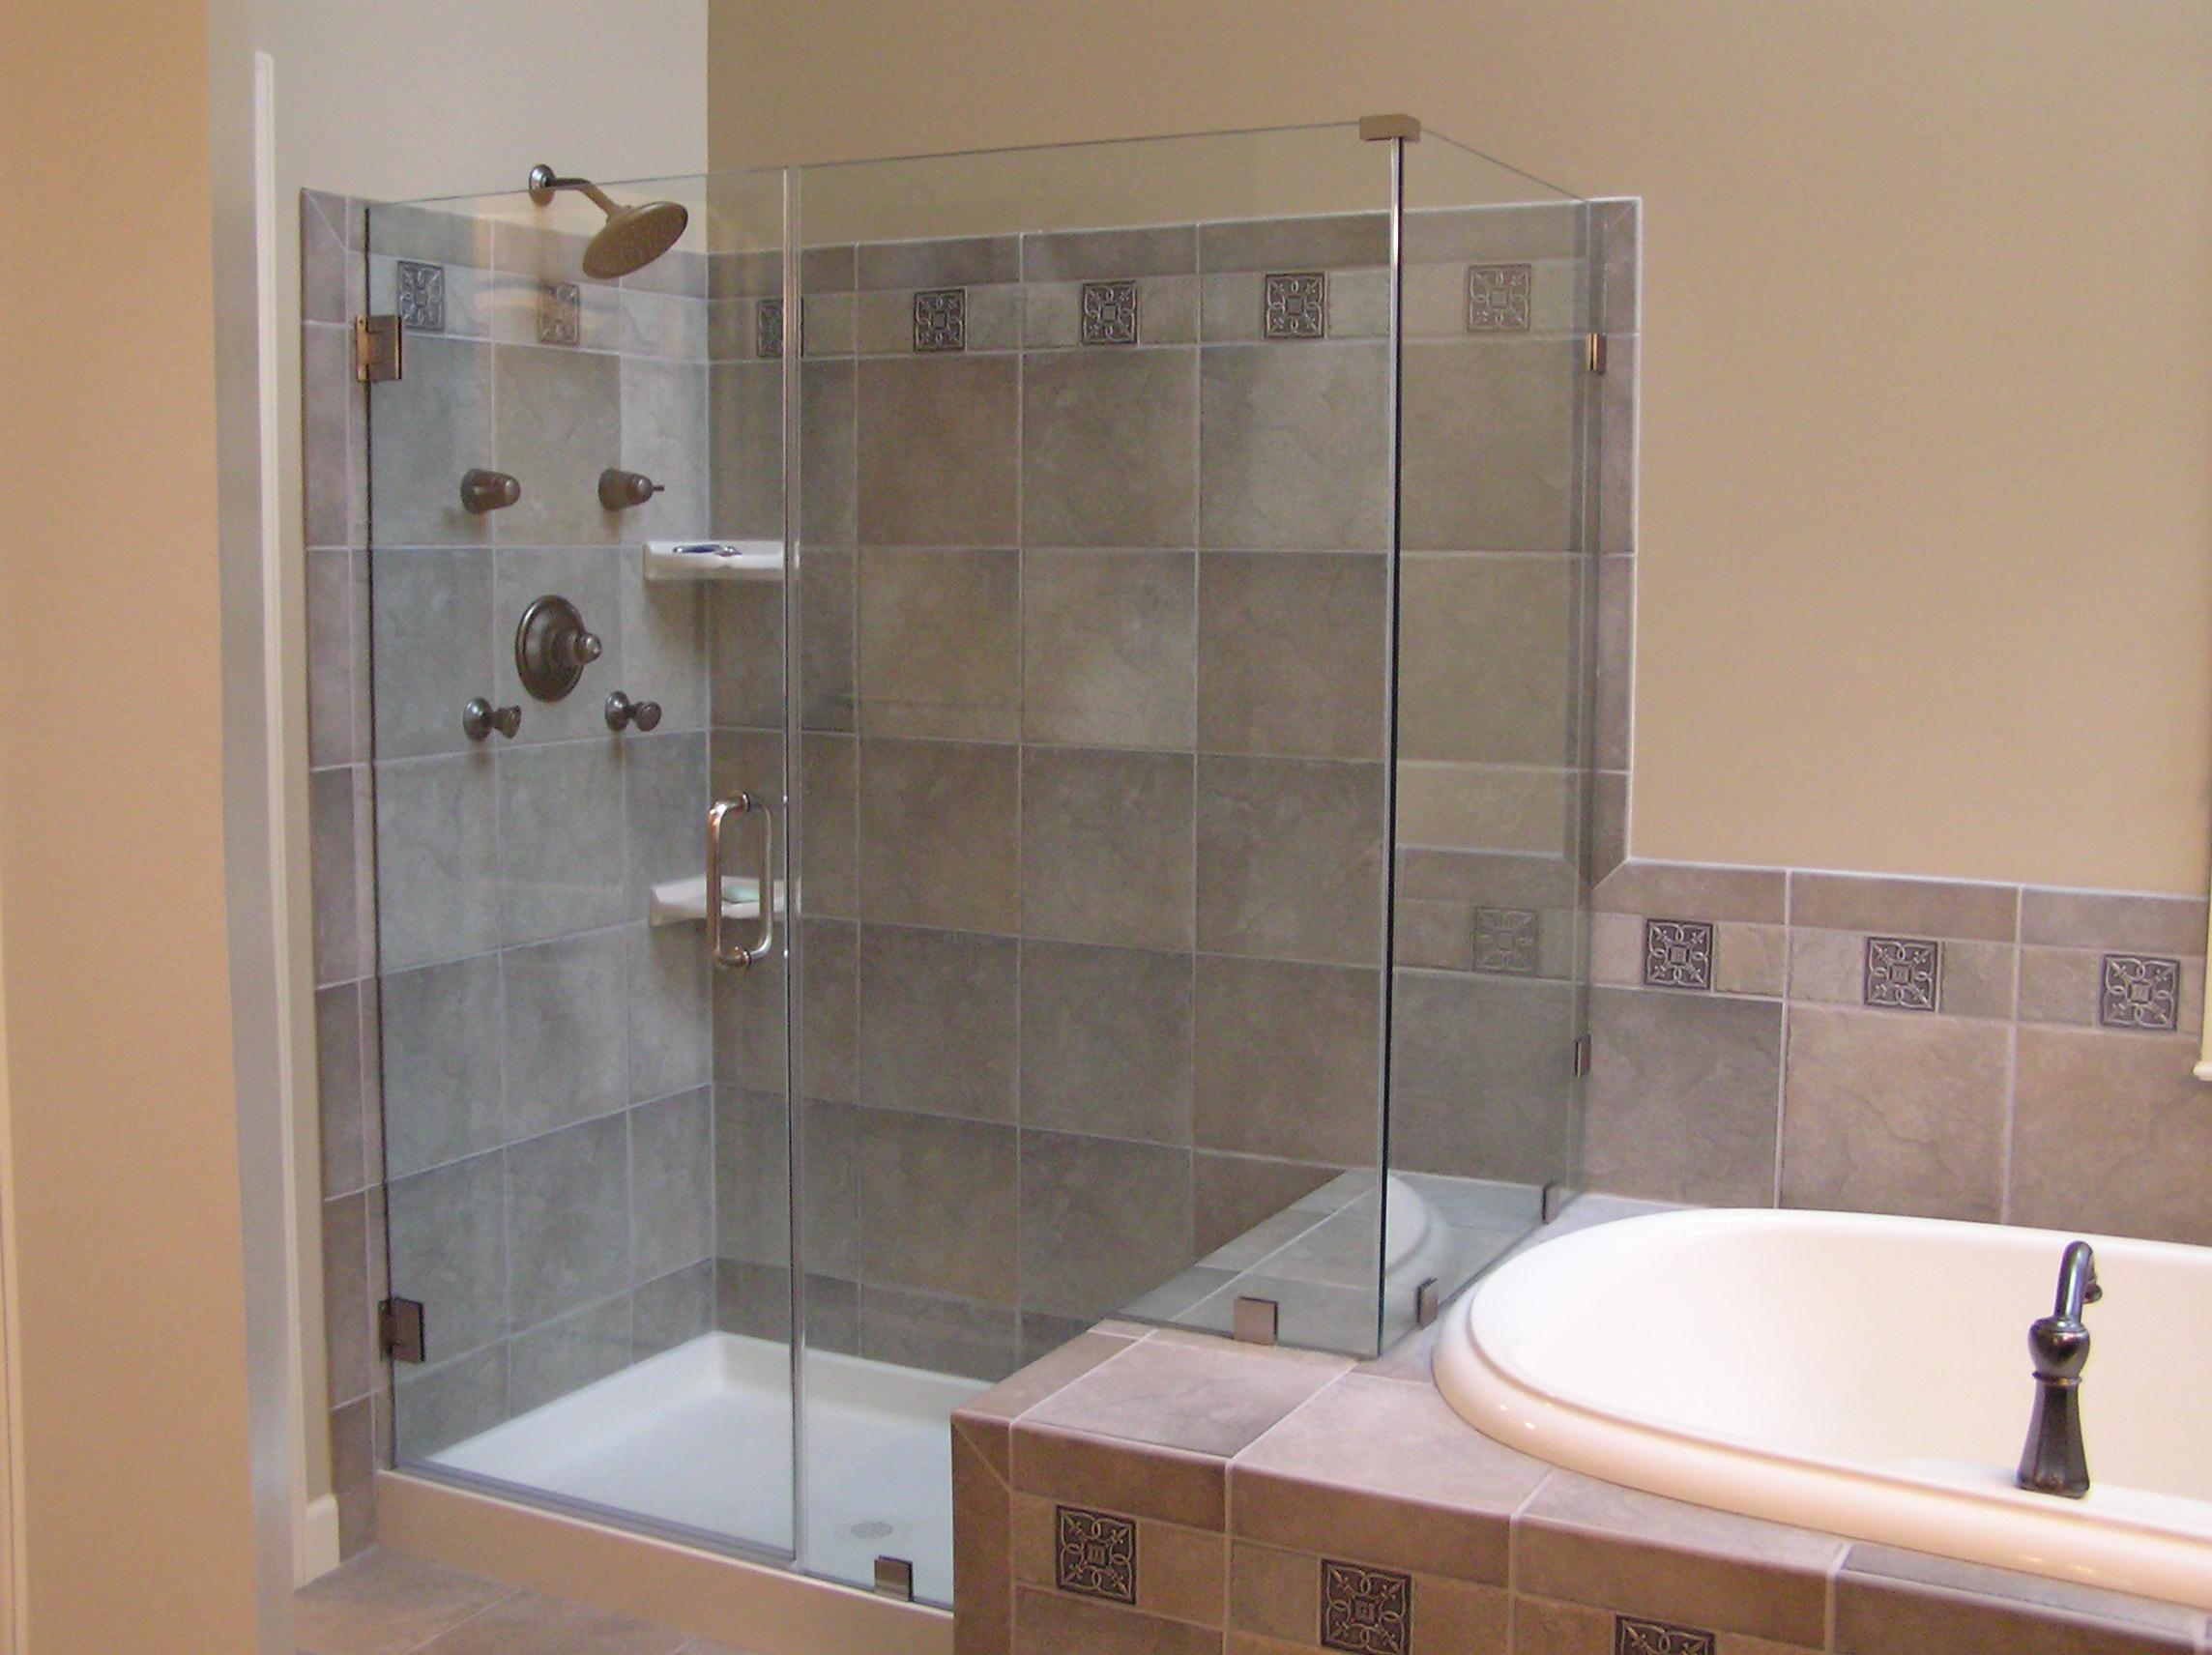 Bathroom Remodel Delaware Home Improvement Contractors - Bathroom shower remodel photos